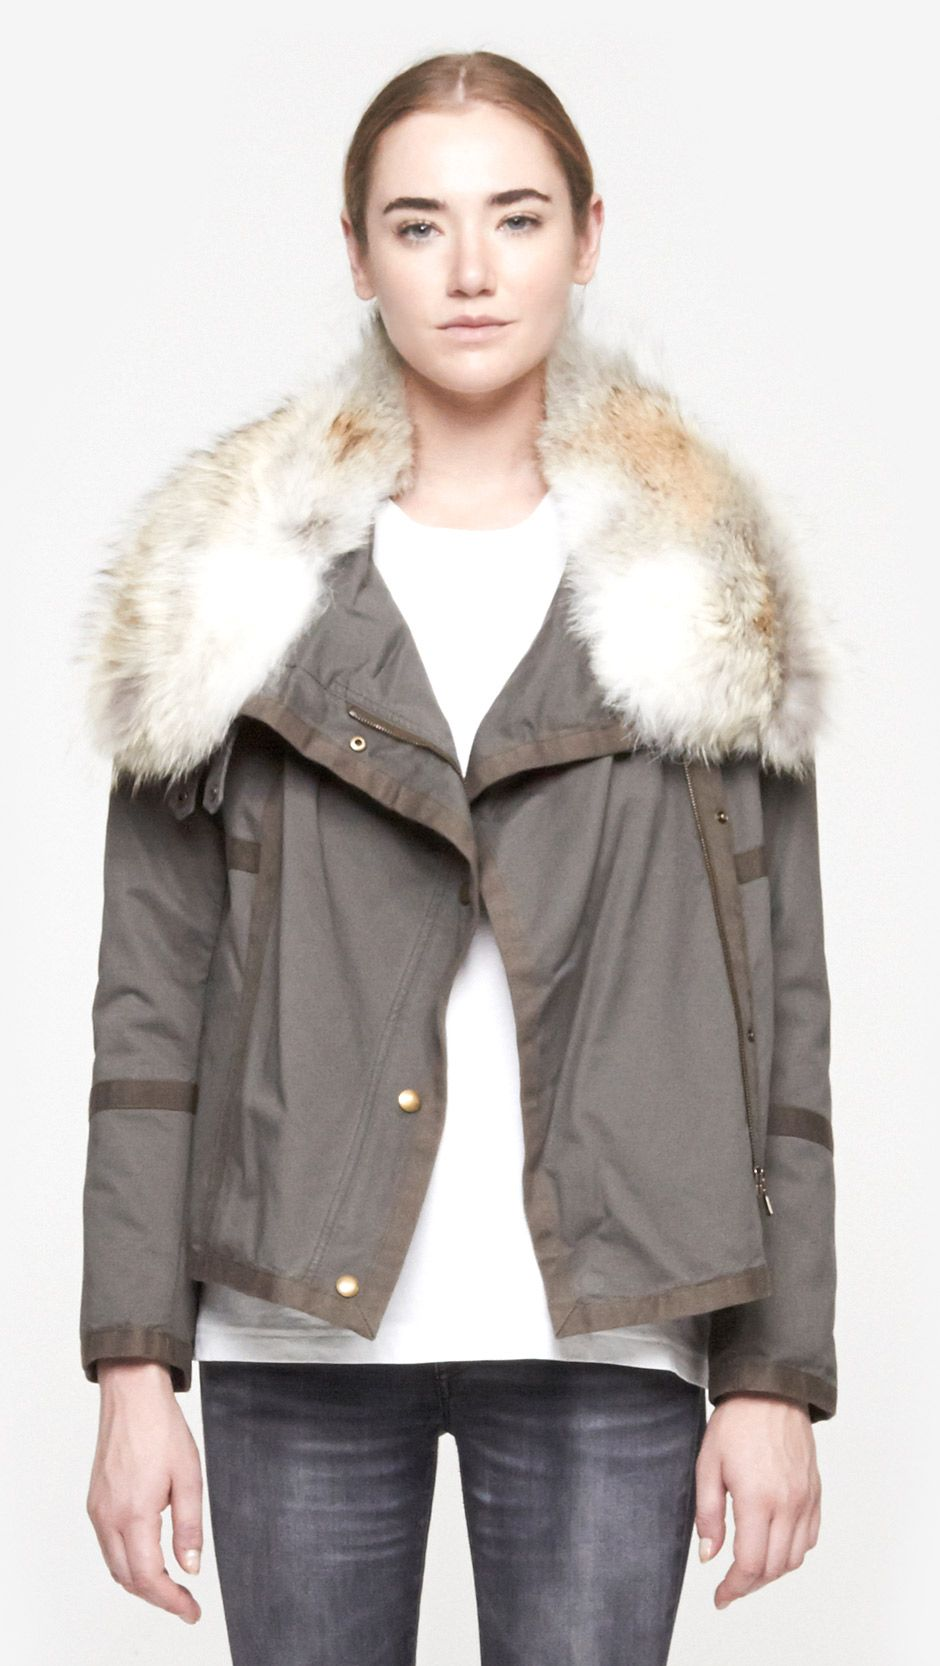 Short Cotton Parka by Yves Salomon | YVES SALOMON | Pinterest ...